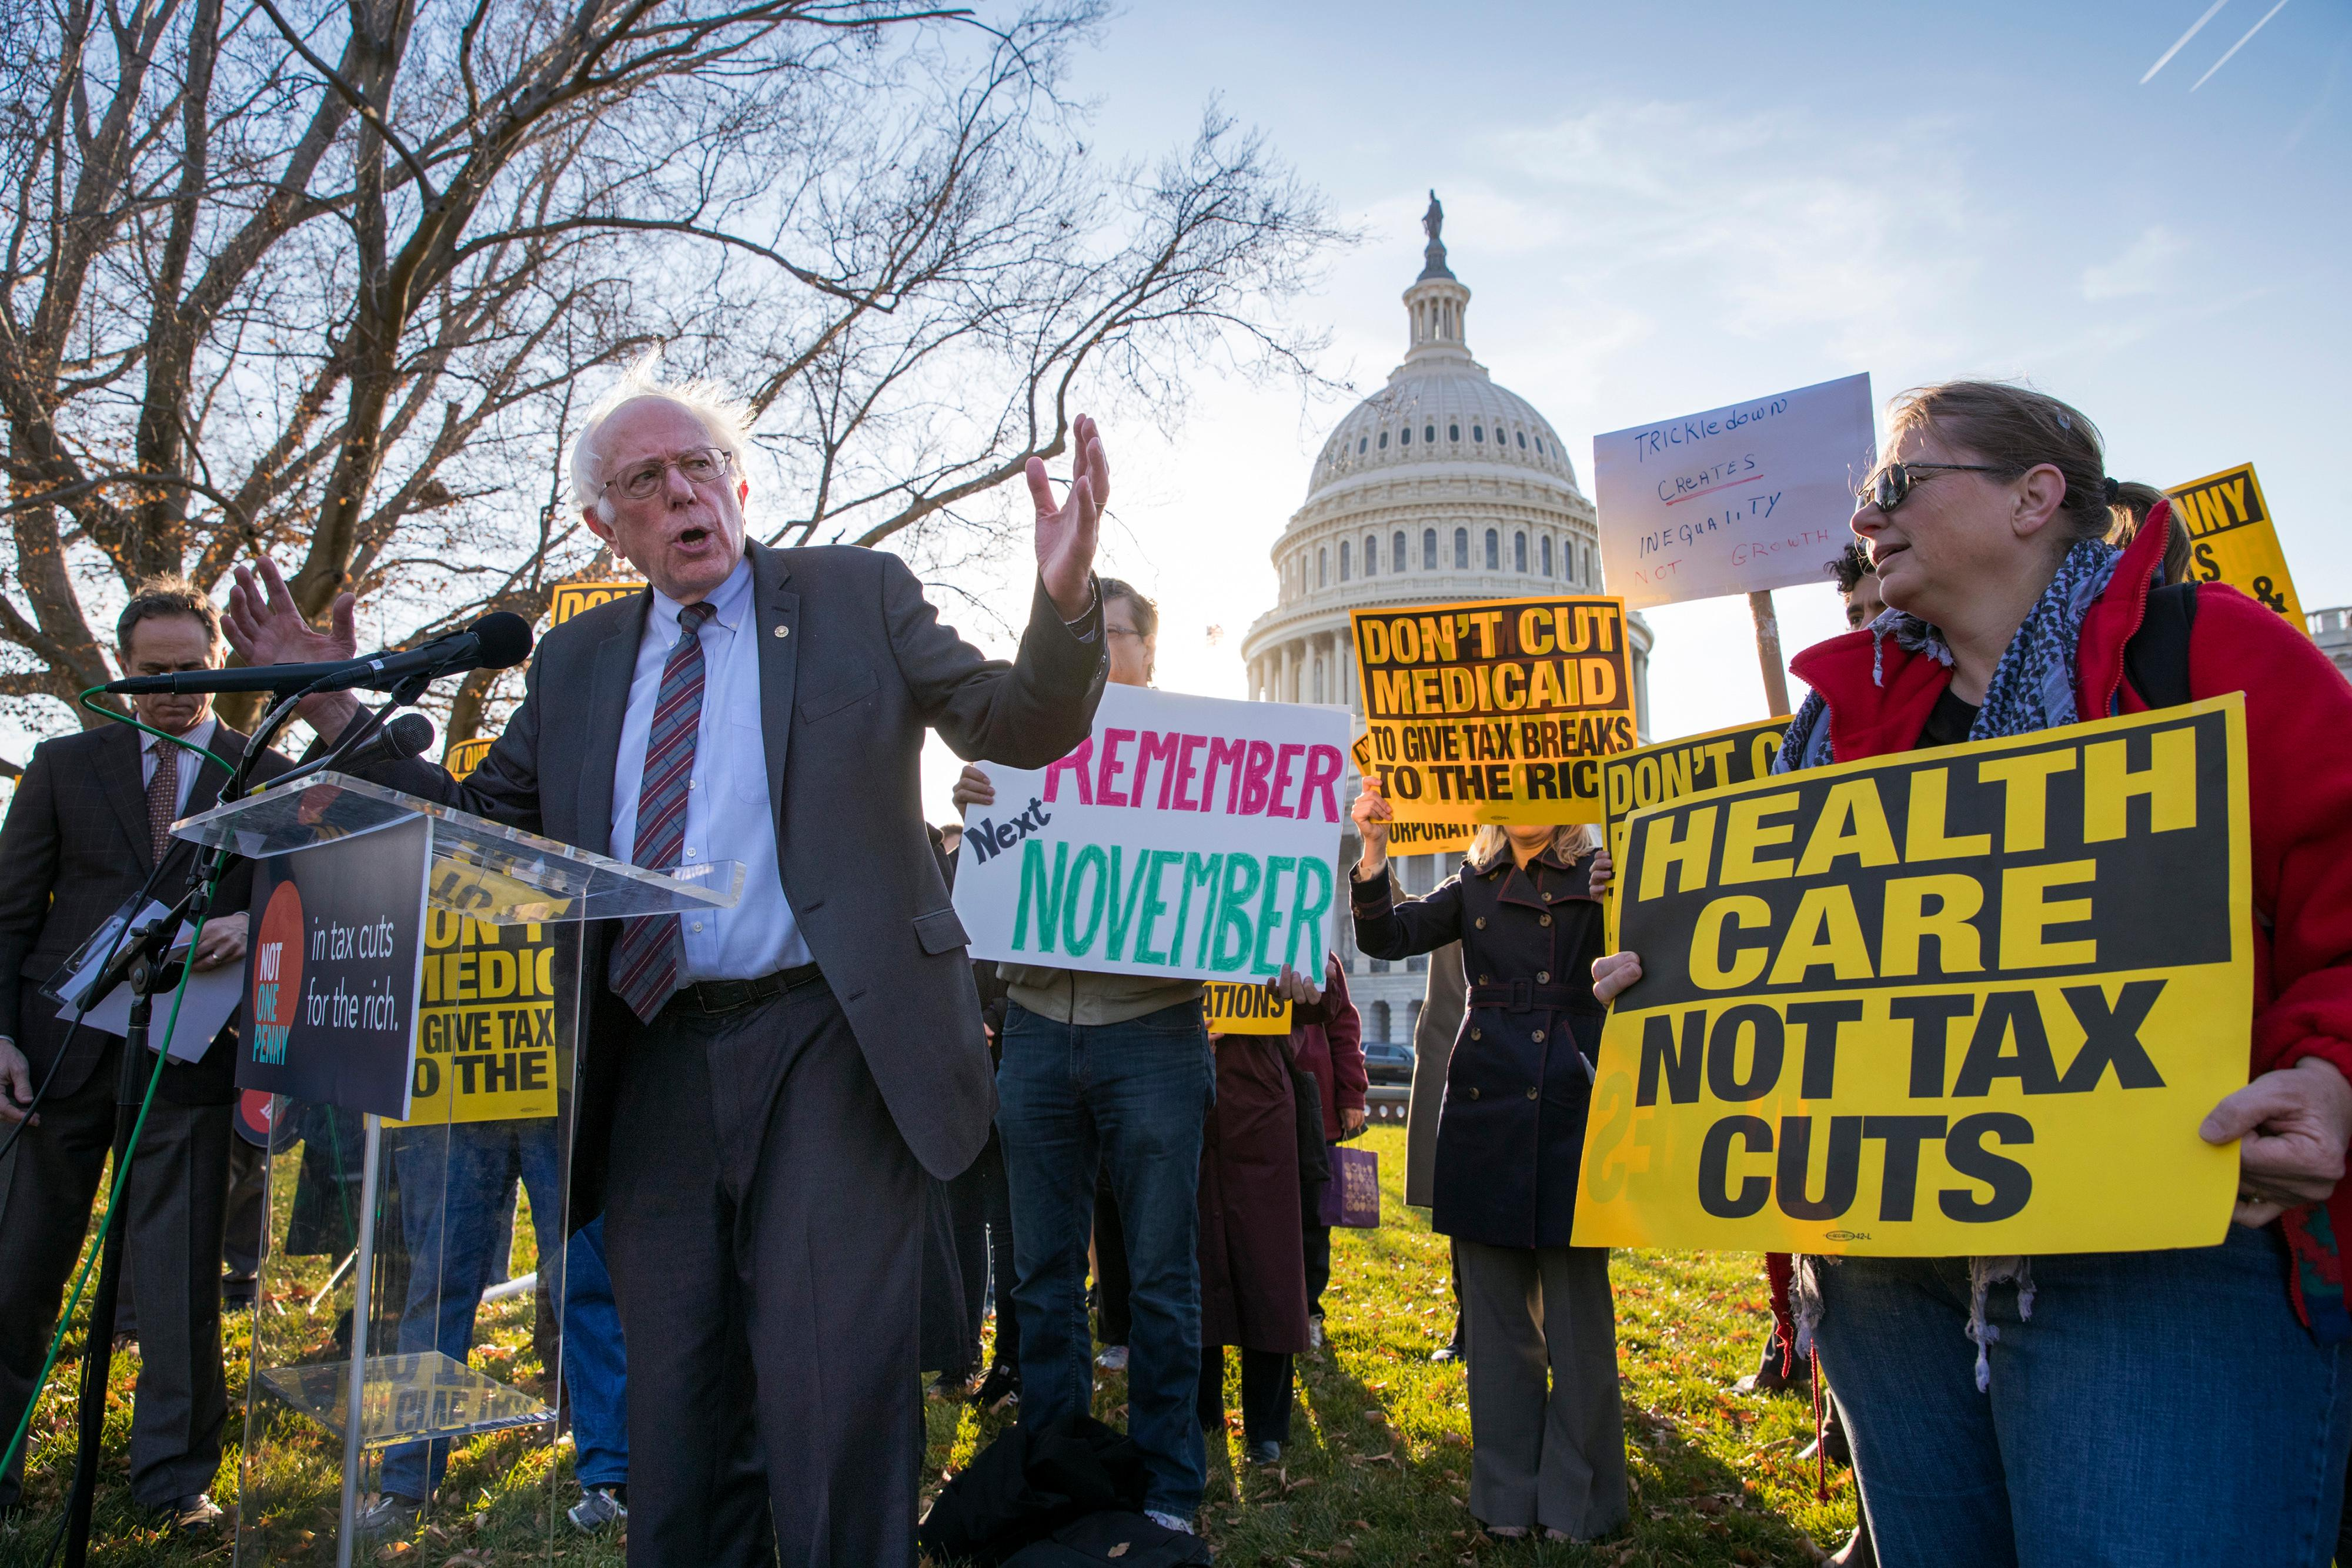 Sen. Bernie Sanders, I-Vt., joins protesters outside the Capitol as Republicans in the Senate work to pass their sweeping tax bill, a blend of generous tax cuts for businesses and more modest tax cuts for families and individuals, on Capitol Hill in Washington, Thursday, Nov. 30, 2017. It would mark the first time in 31 years that Congress has overhauled the tax code, making it the biggest legislative achievement of President Donald Trump's first year in office. (AP Photo/J. Scott Applewhite)